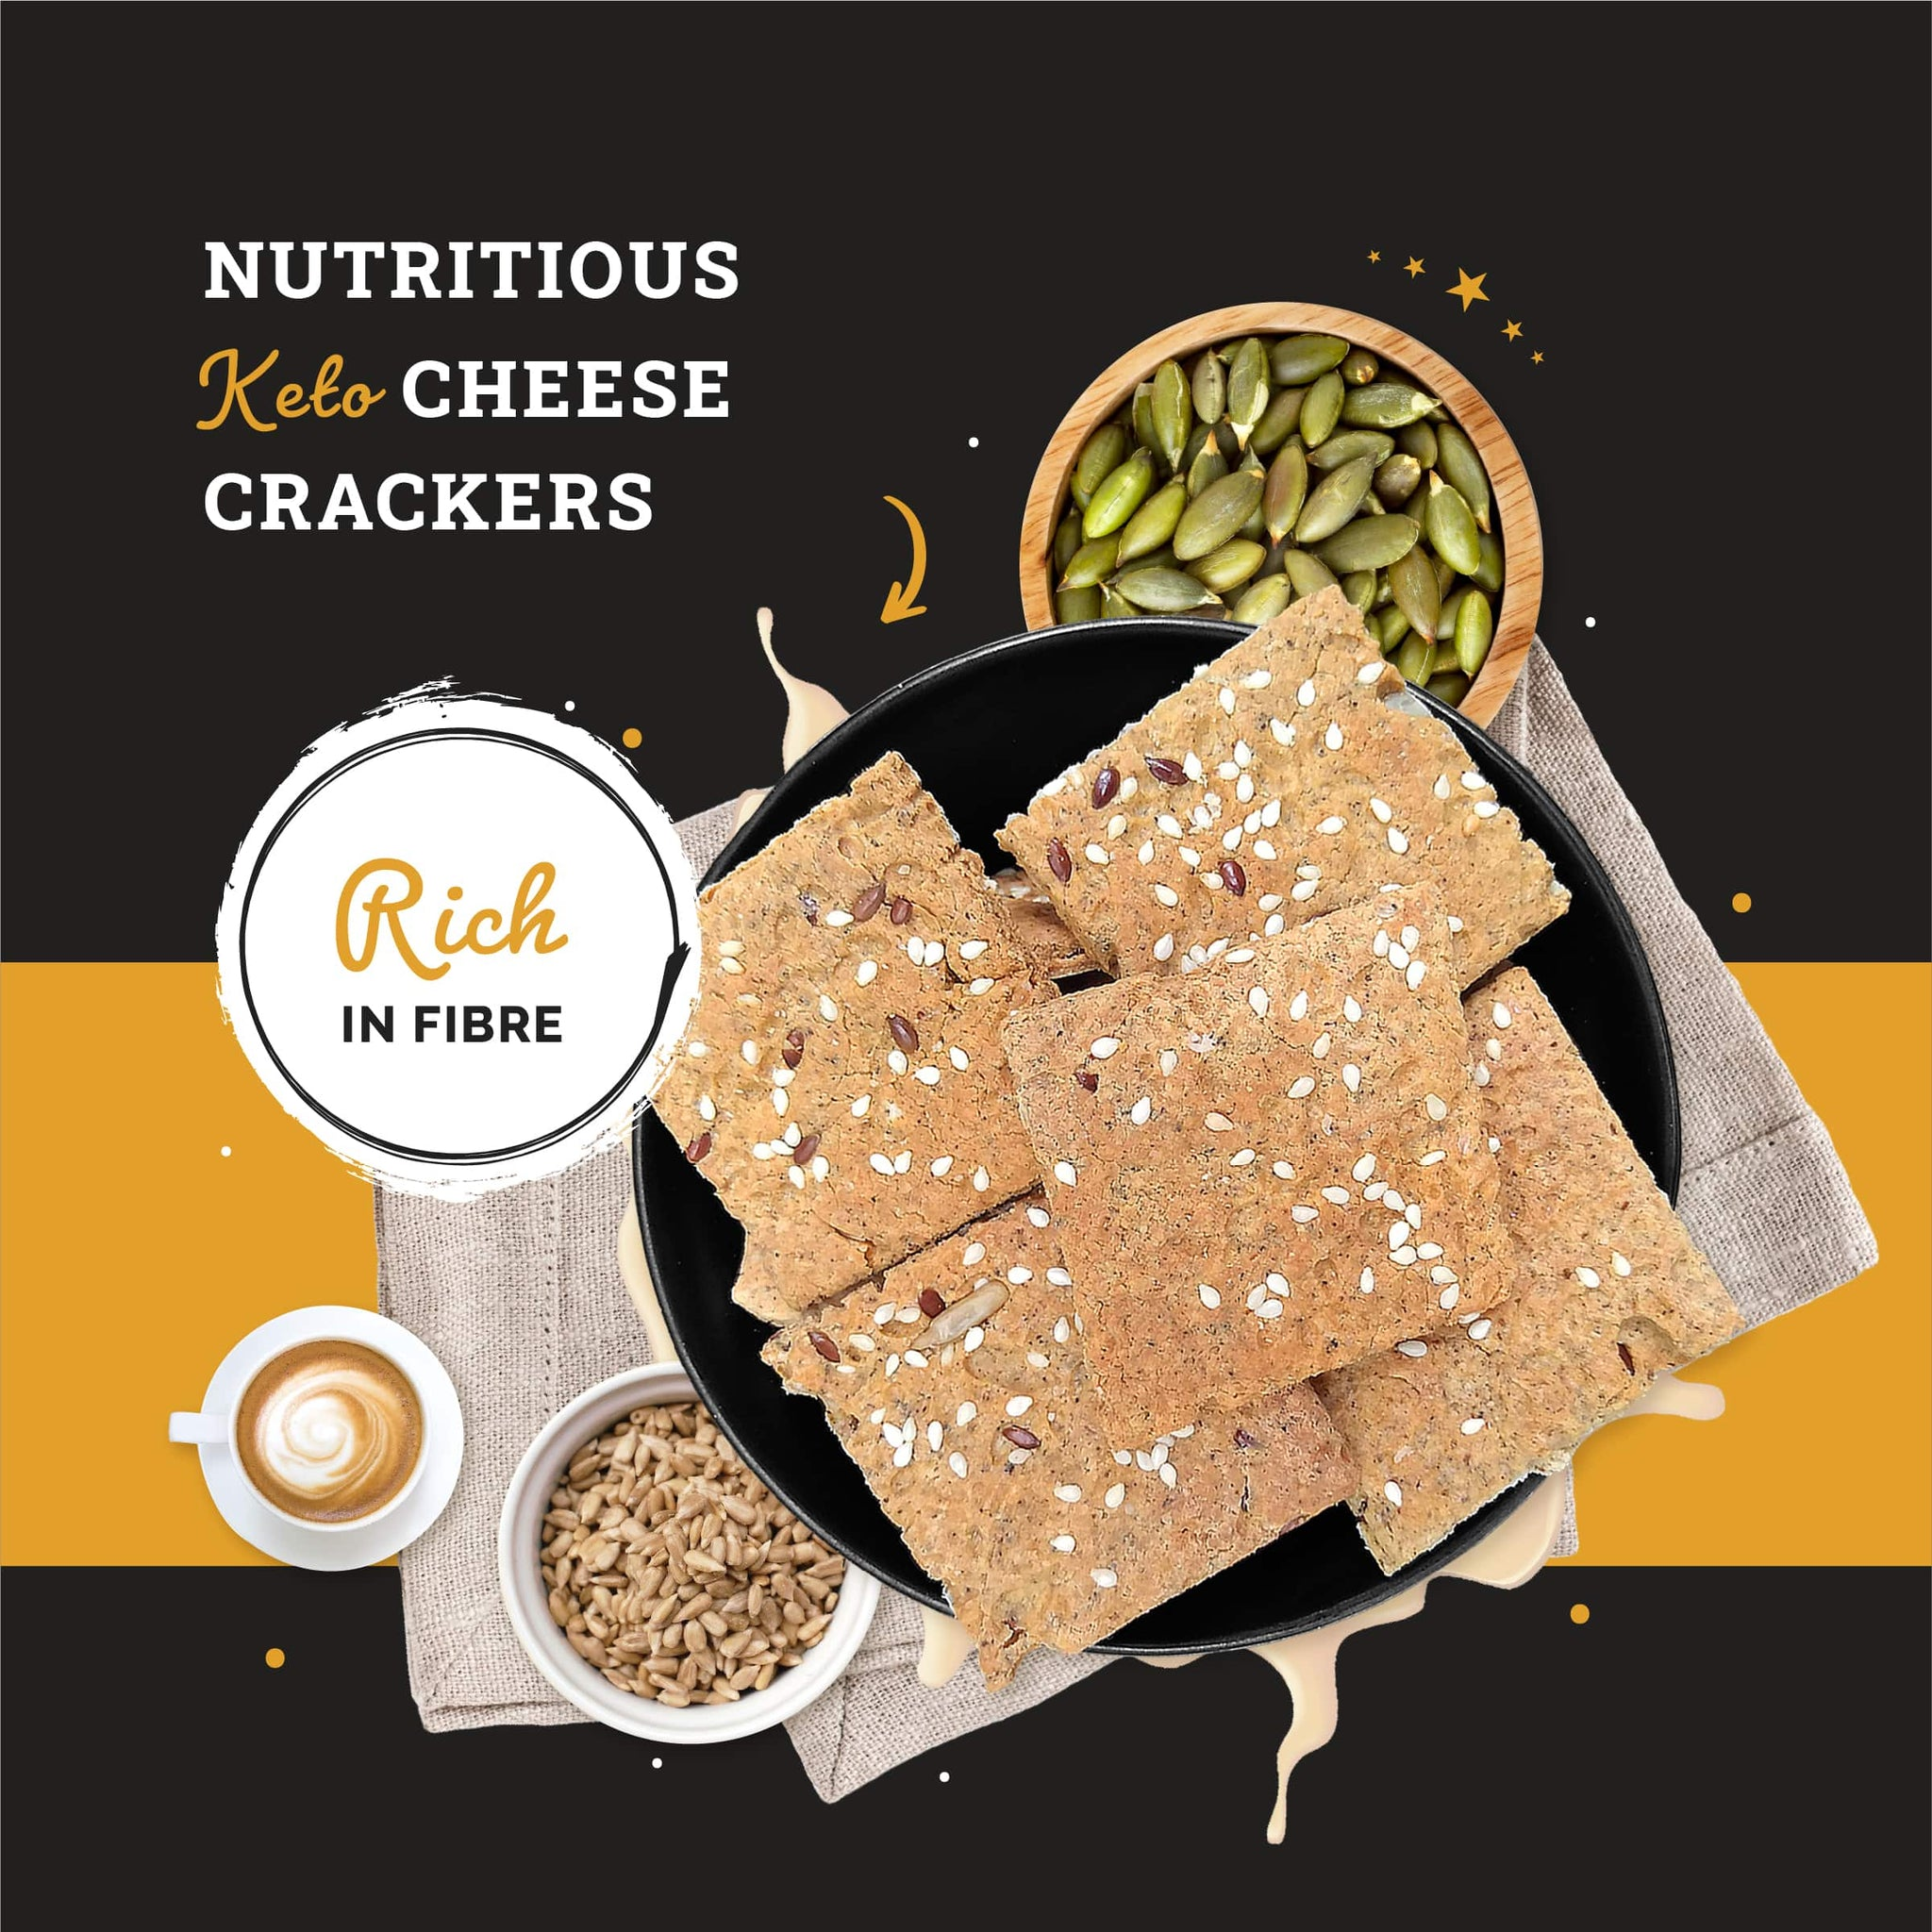 Ketofy Cheese Crackers | Ultra Low Carb